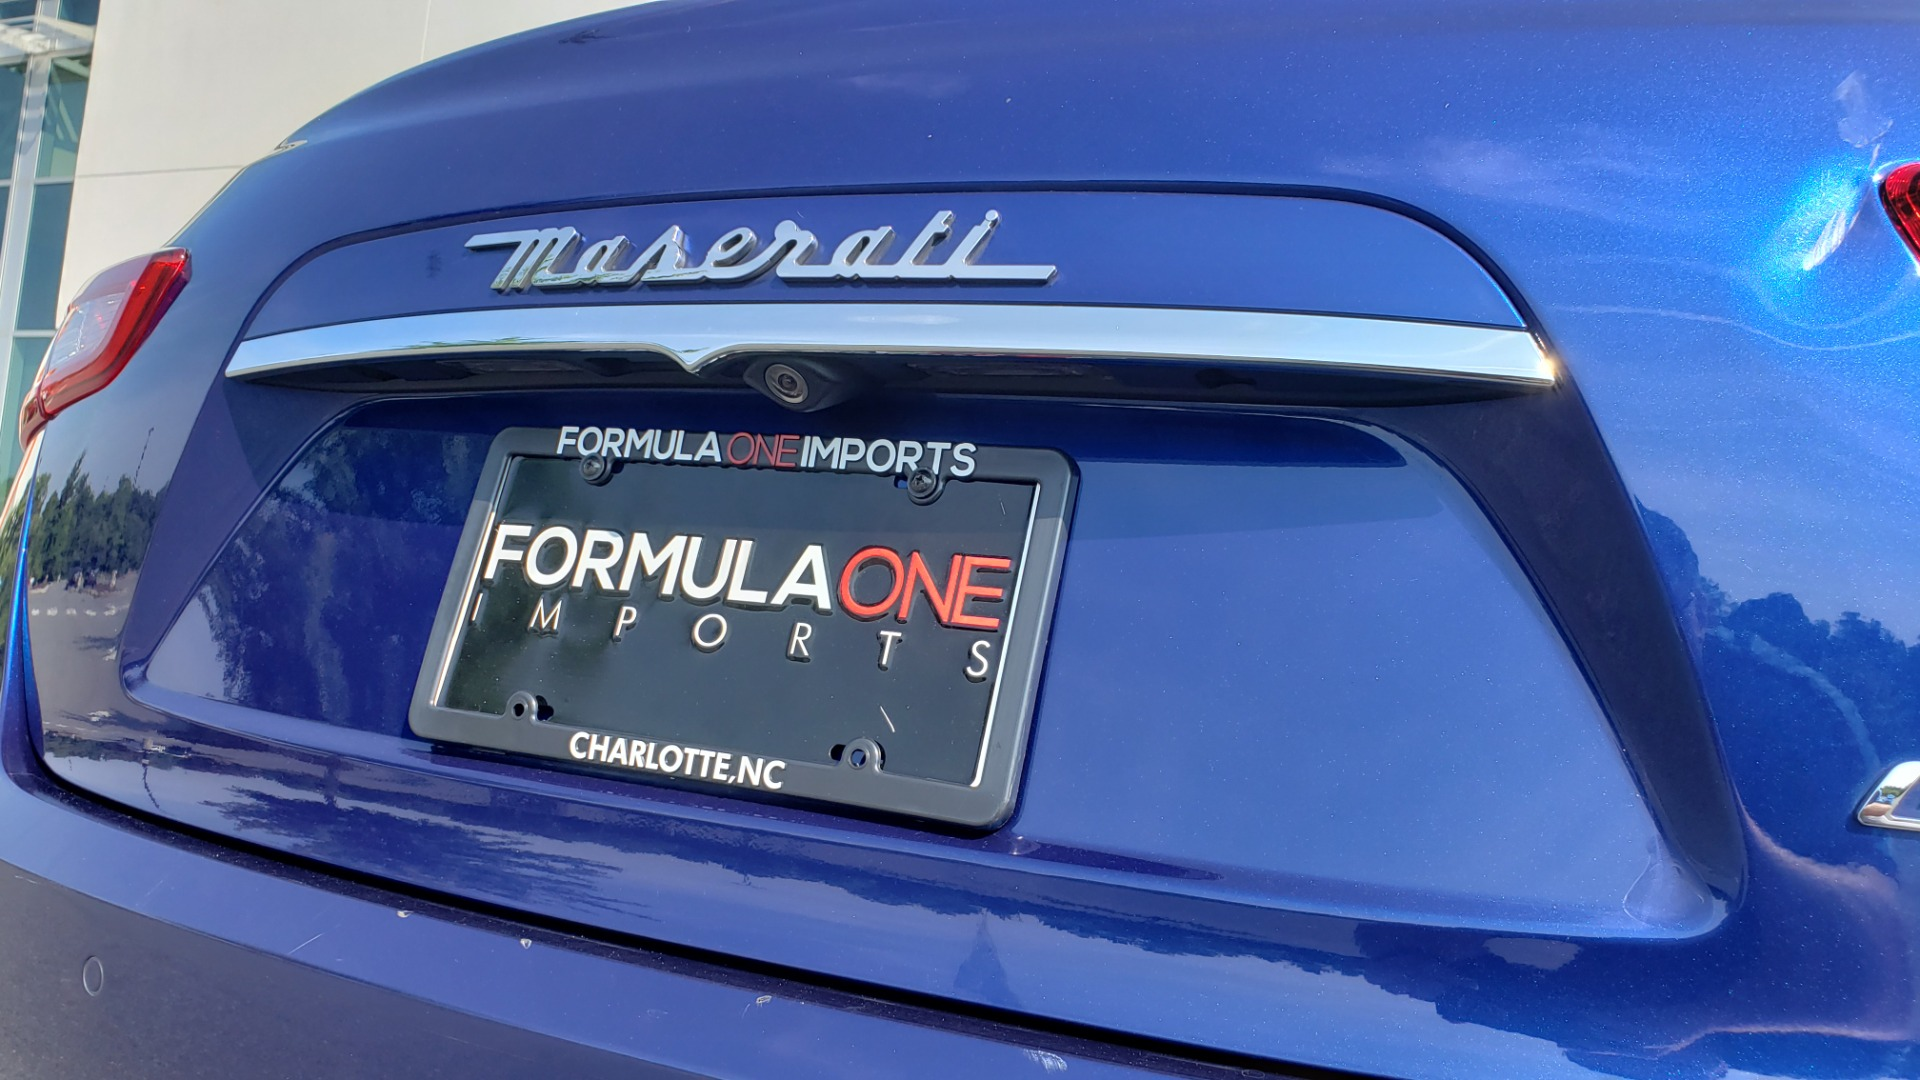 Used 2015 Maserati GHIBLI SEDAN / 3.0L V6 / 8-SPD AUTO / NAV / HTD STS / SUNROOF / REARVIEW for sale $24,495 at Formula Imports in Charlotte NC 28227 32